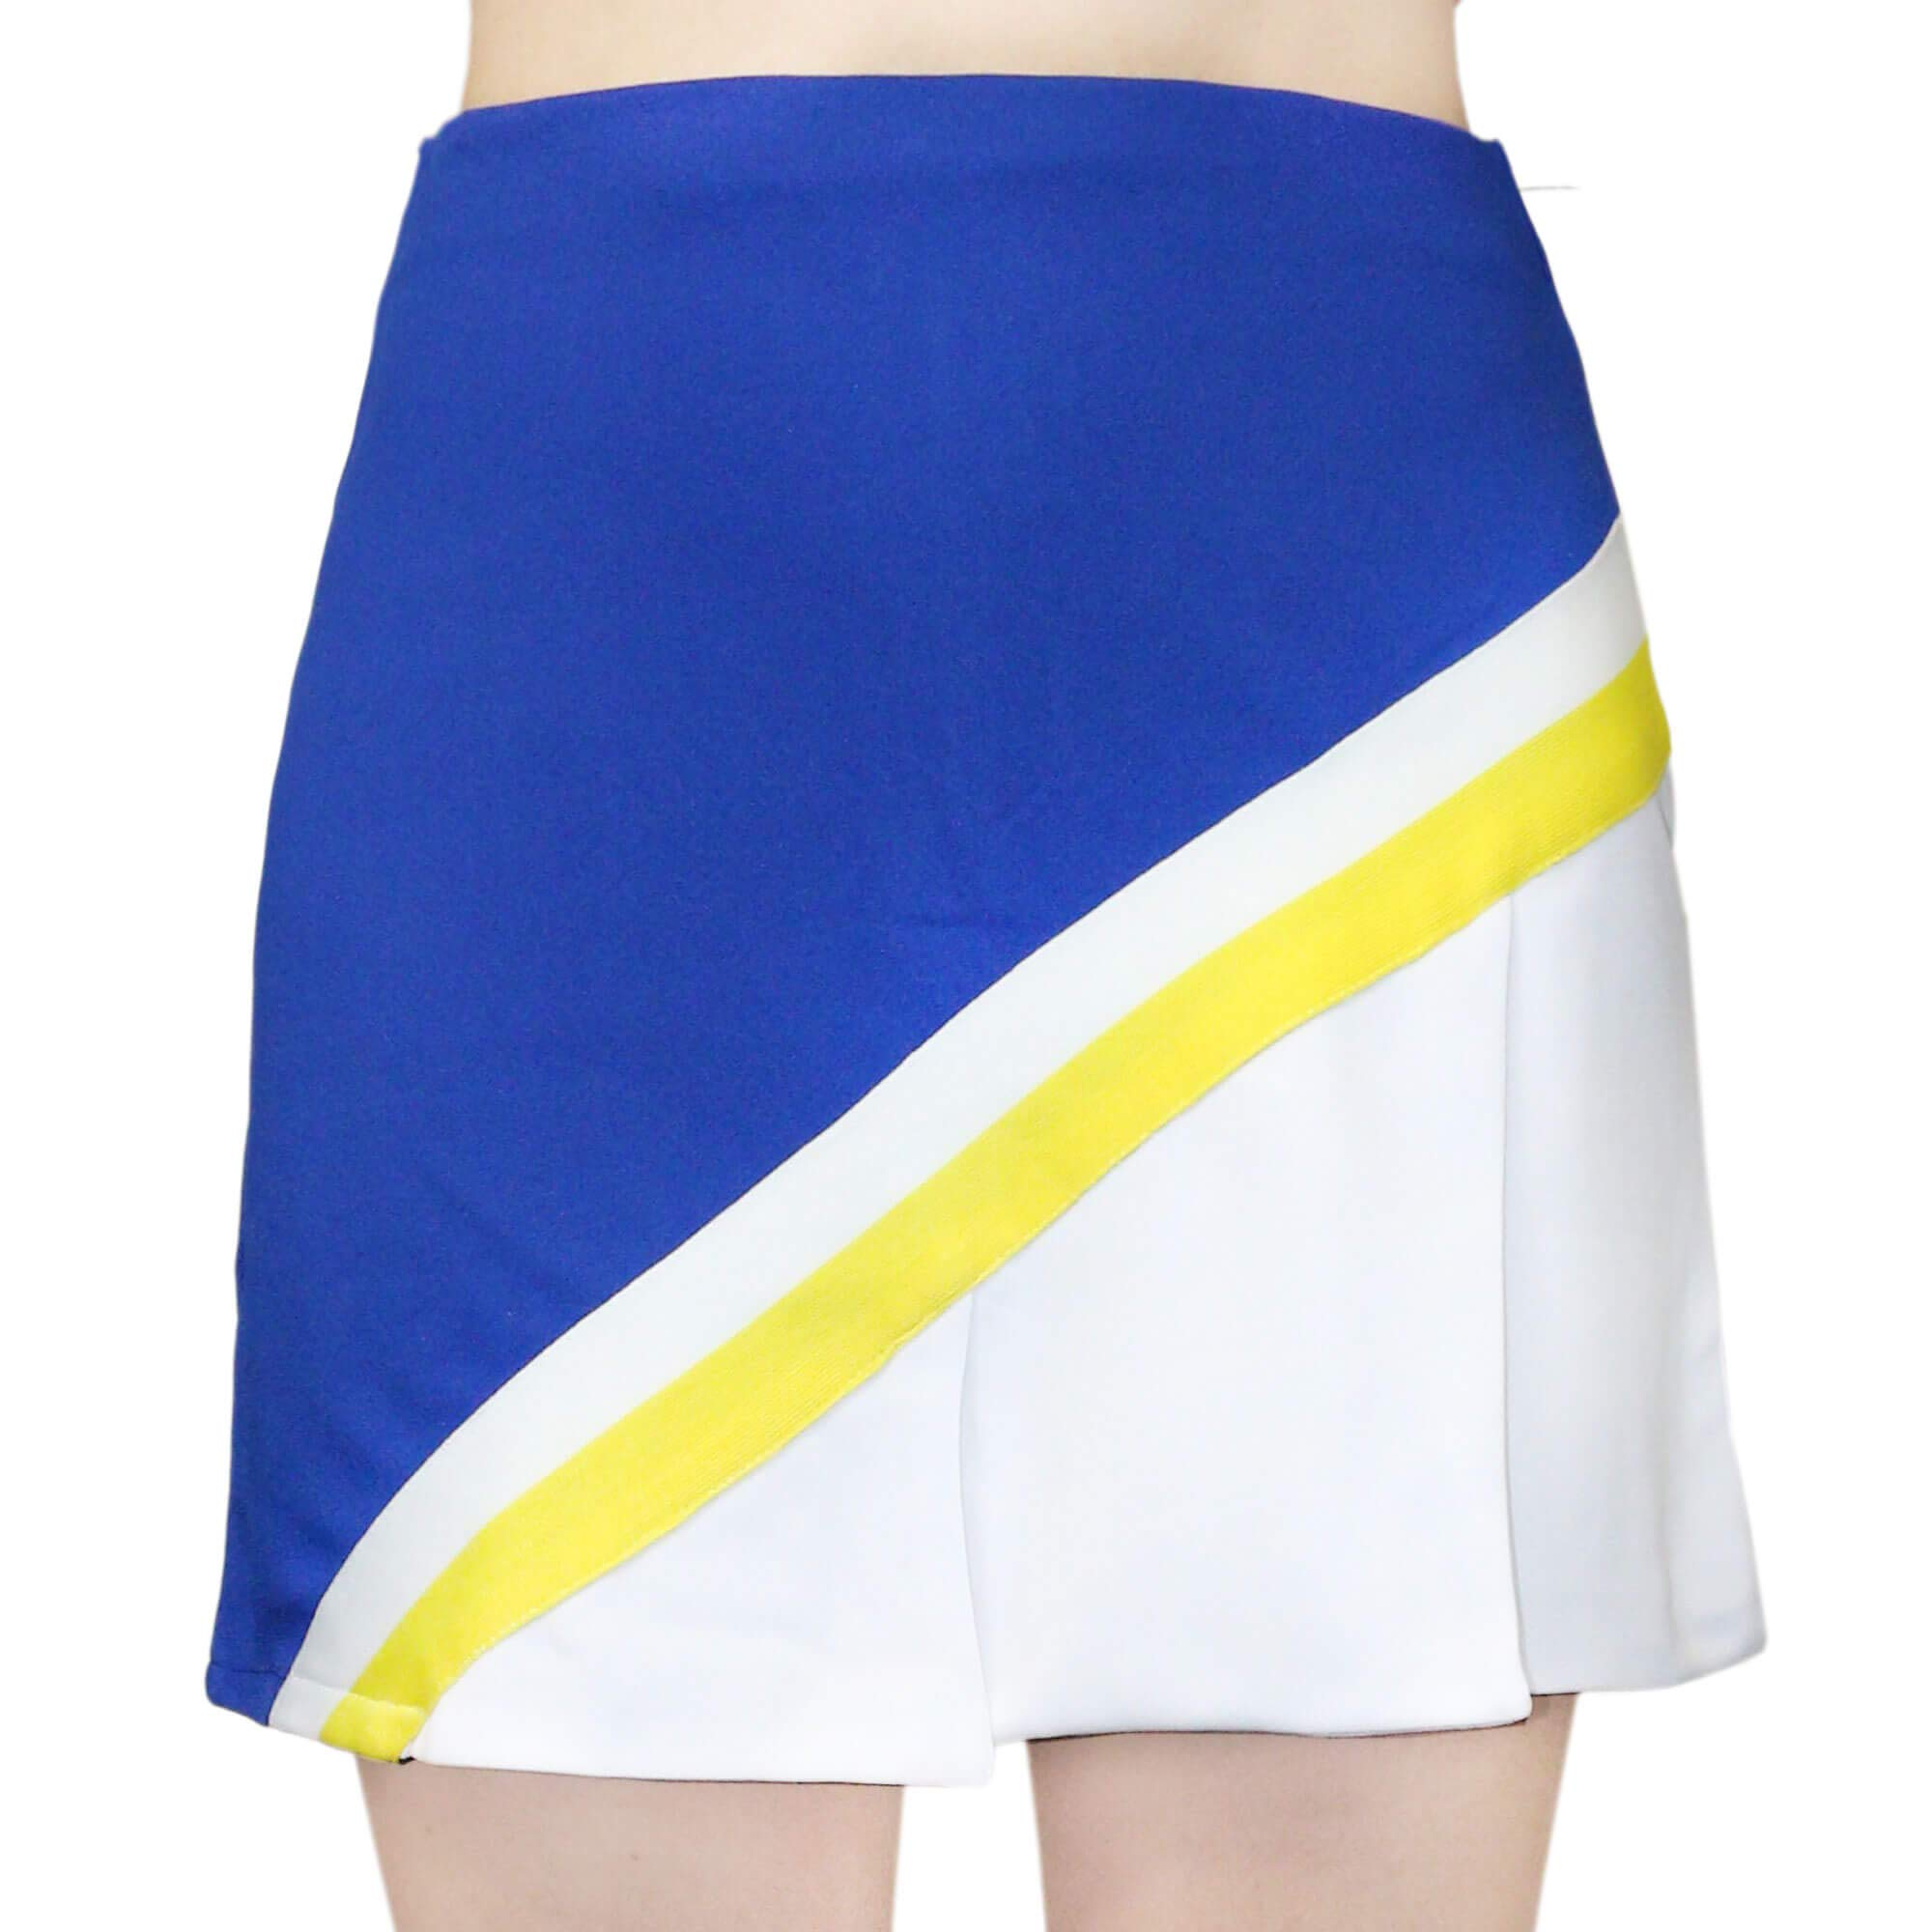 Danzcue Adult Cheerleading A-Line Pleat Skirt, Royal-White, Small by Danzcue